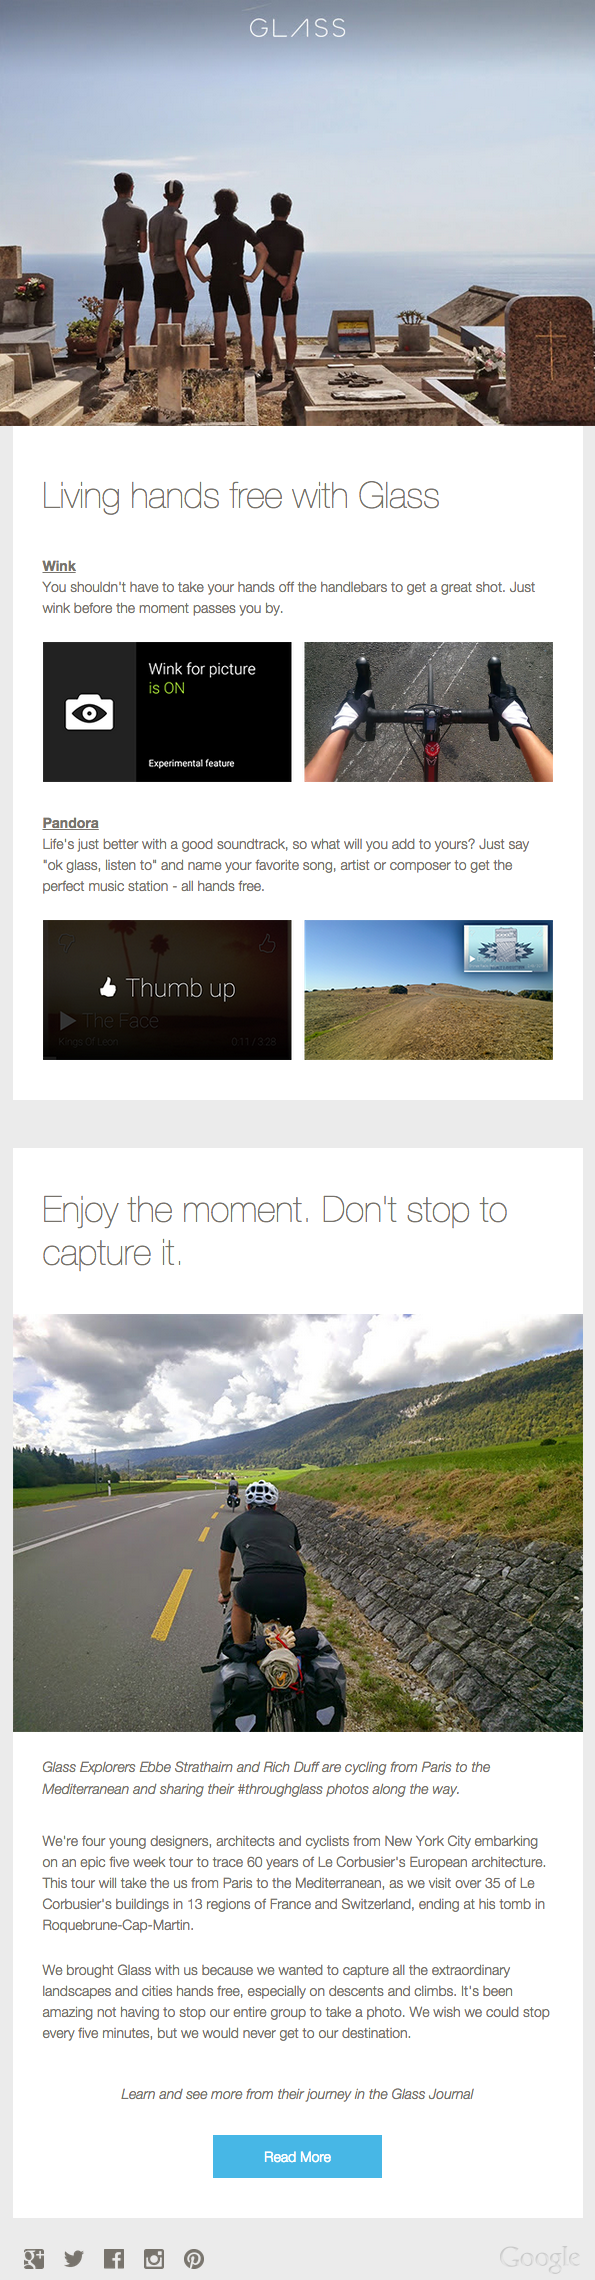 Google Glass email newsletter